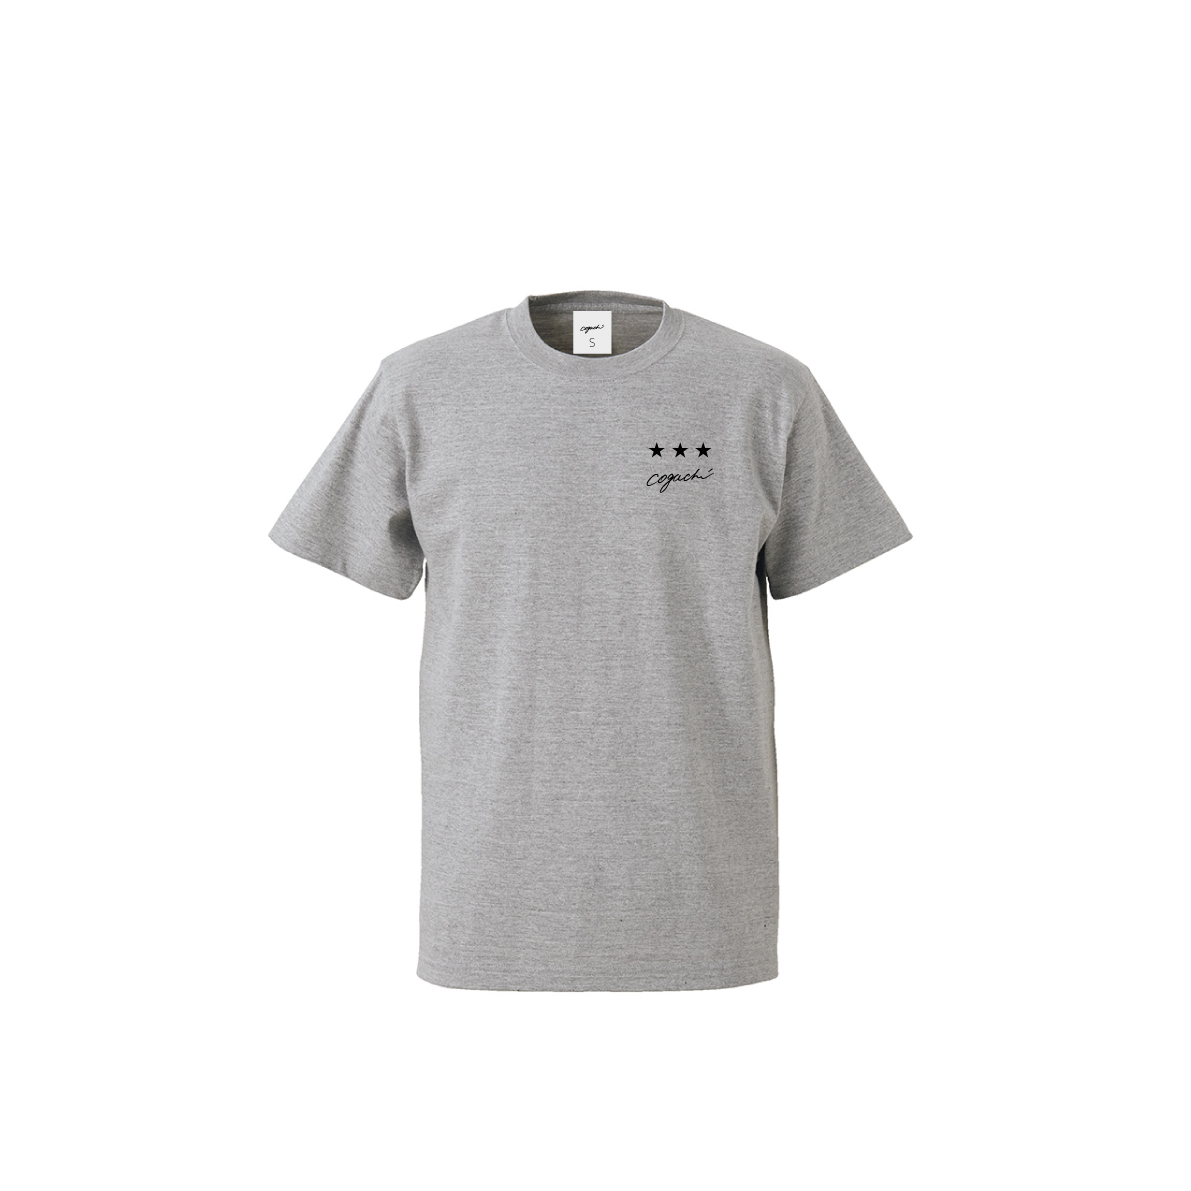 ST T-shirt(HEATHER GRAY)